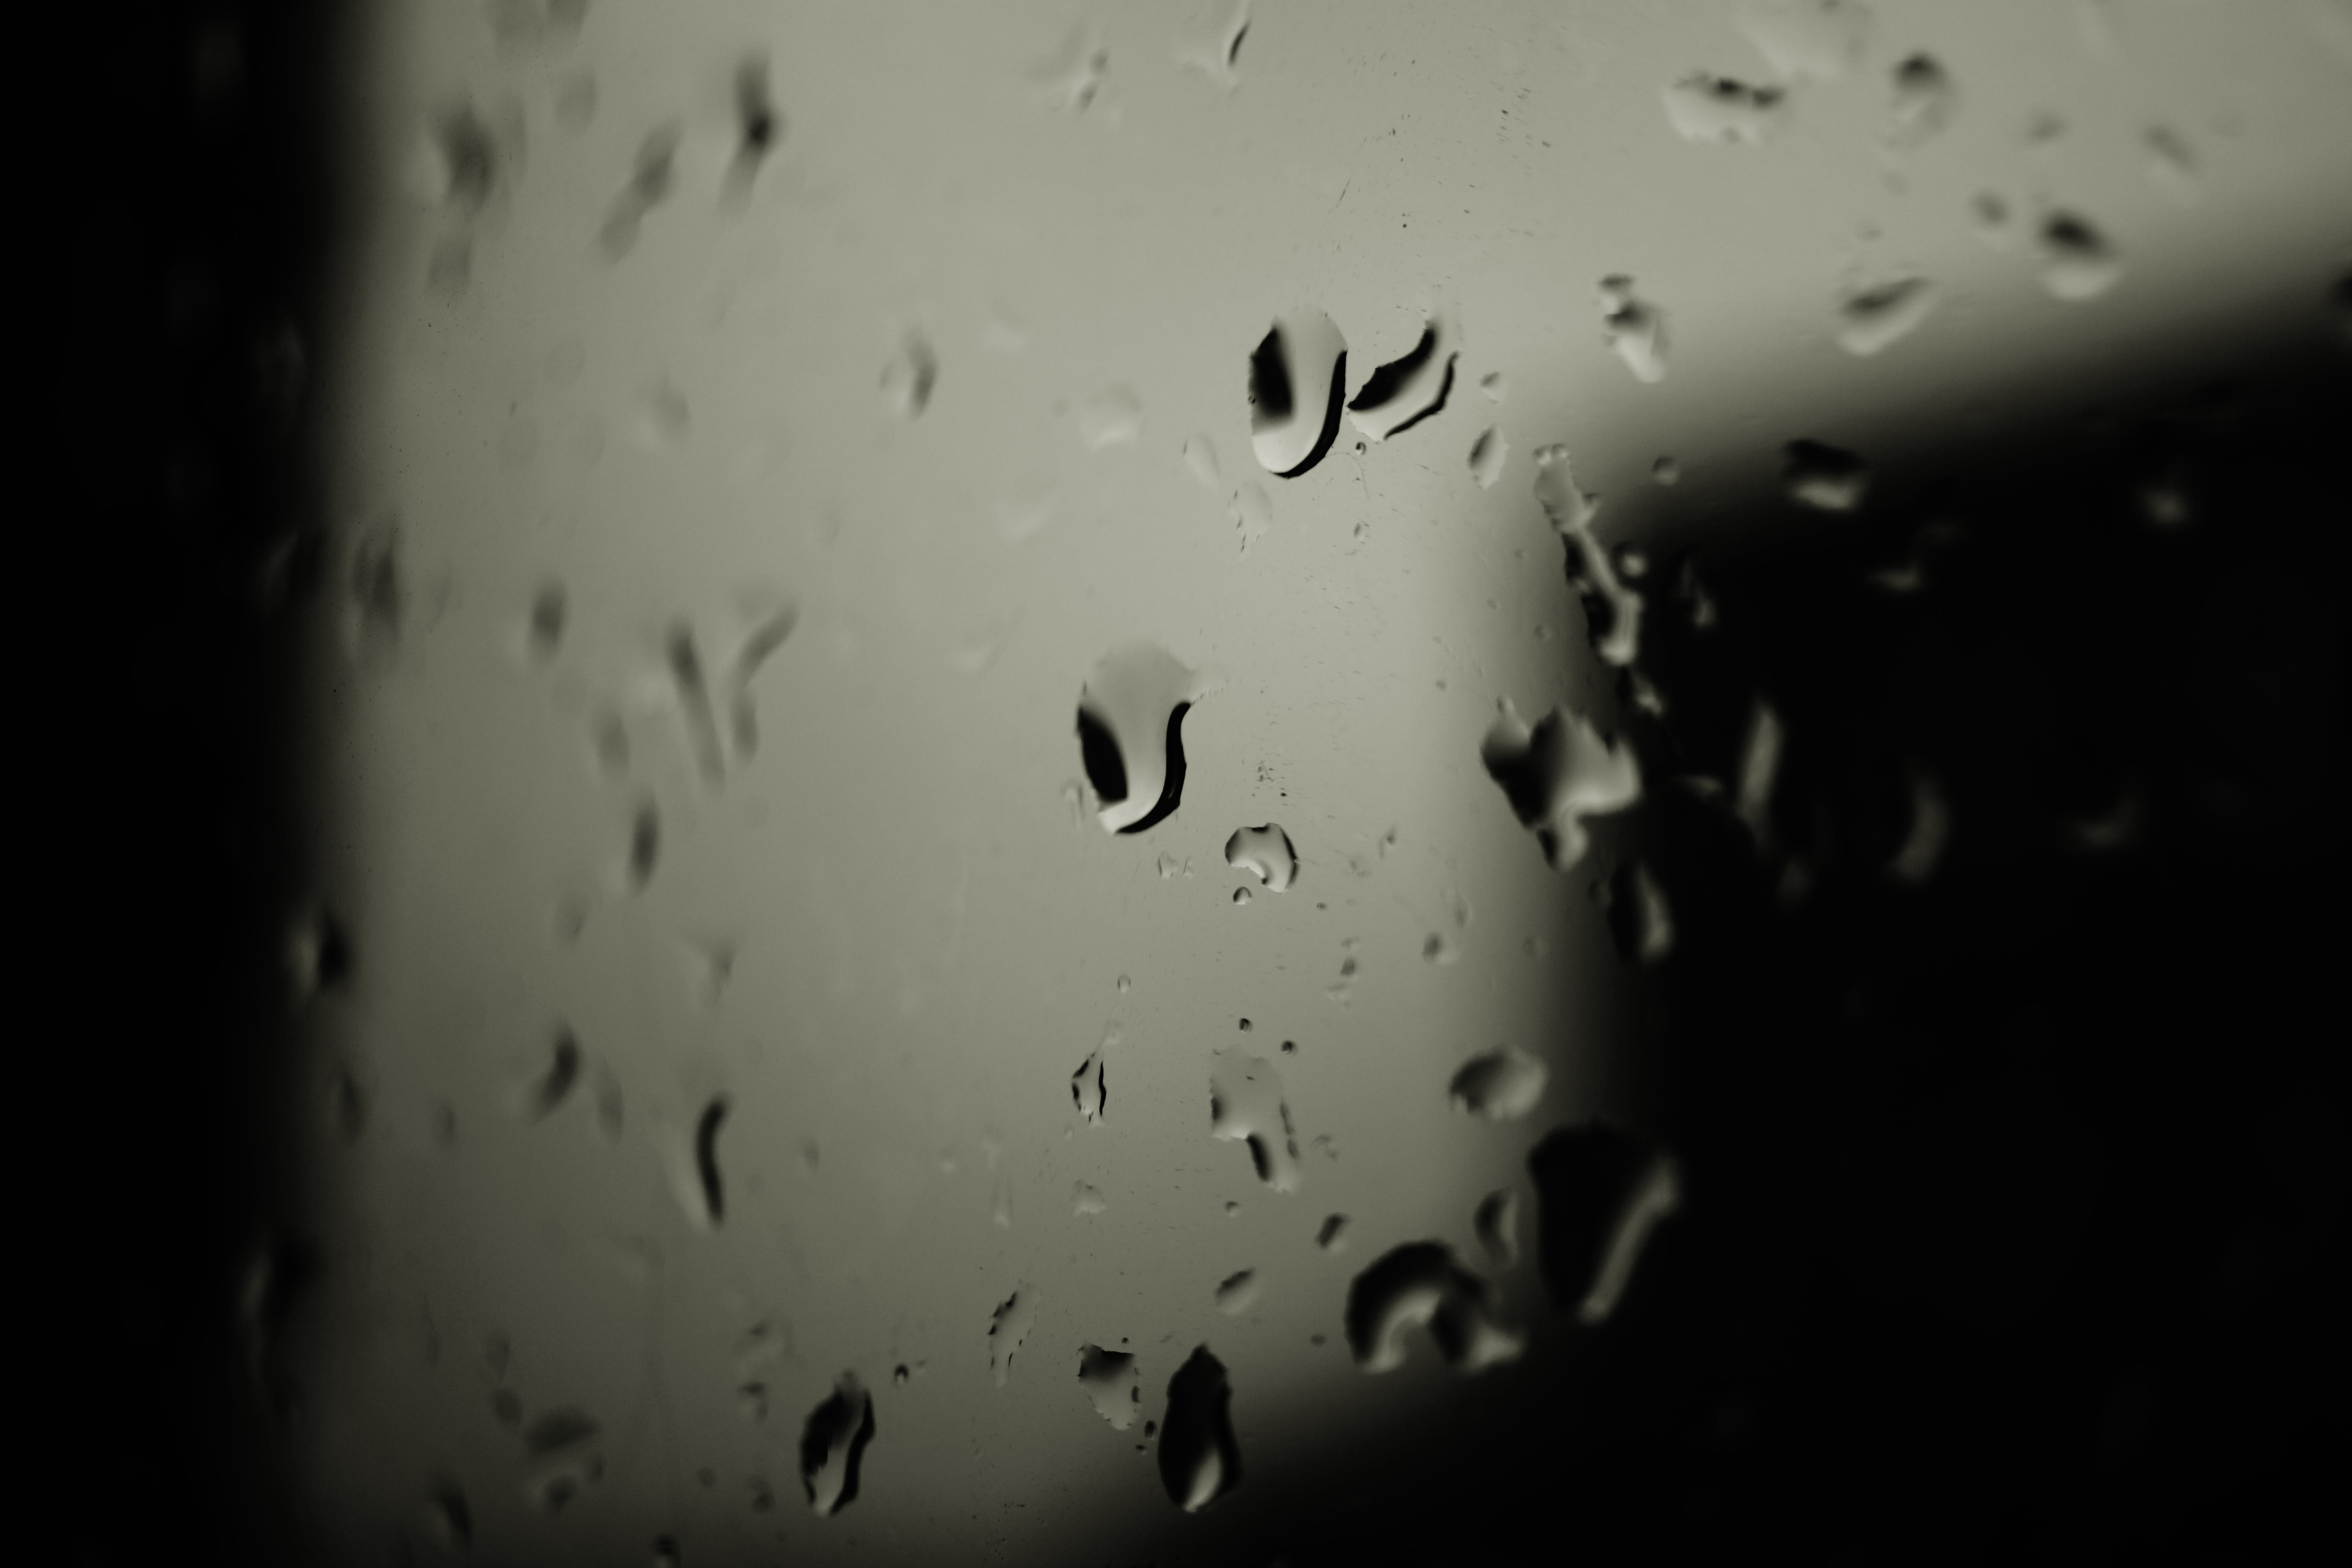 close-up, droplets, glass